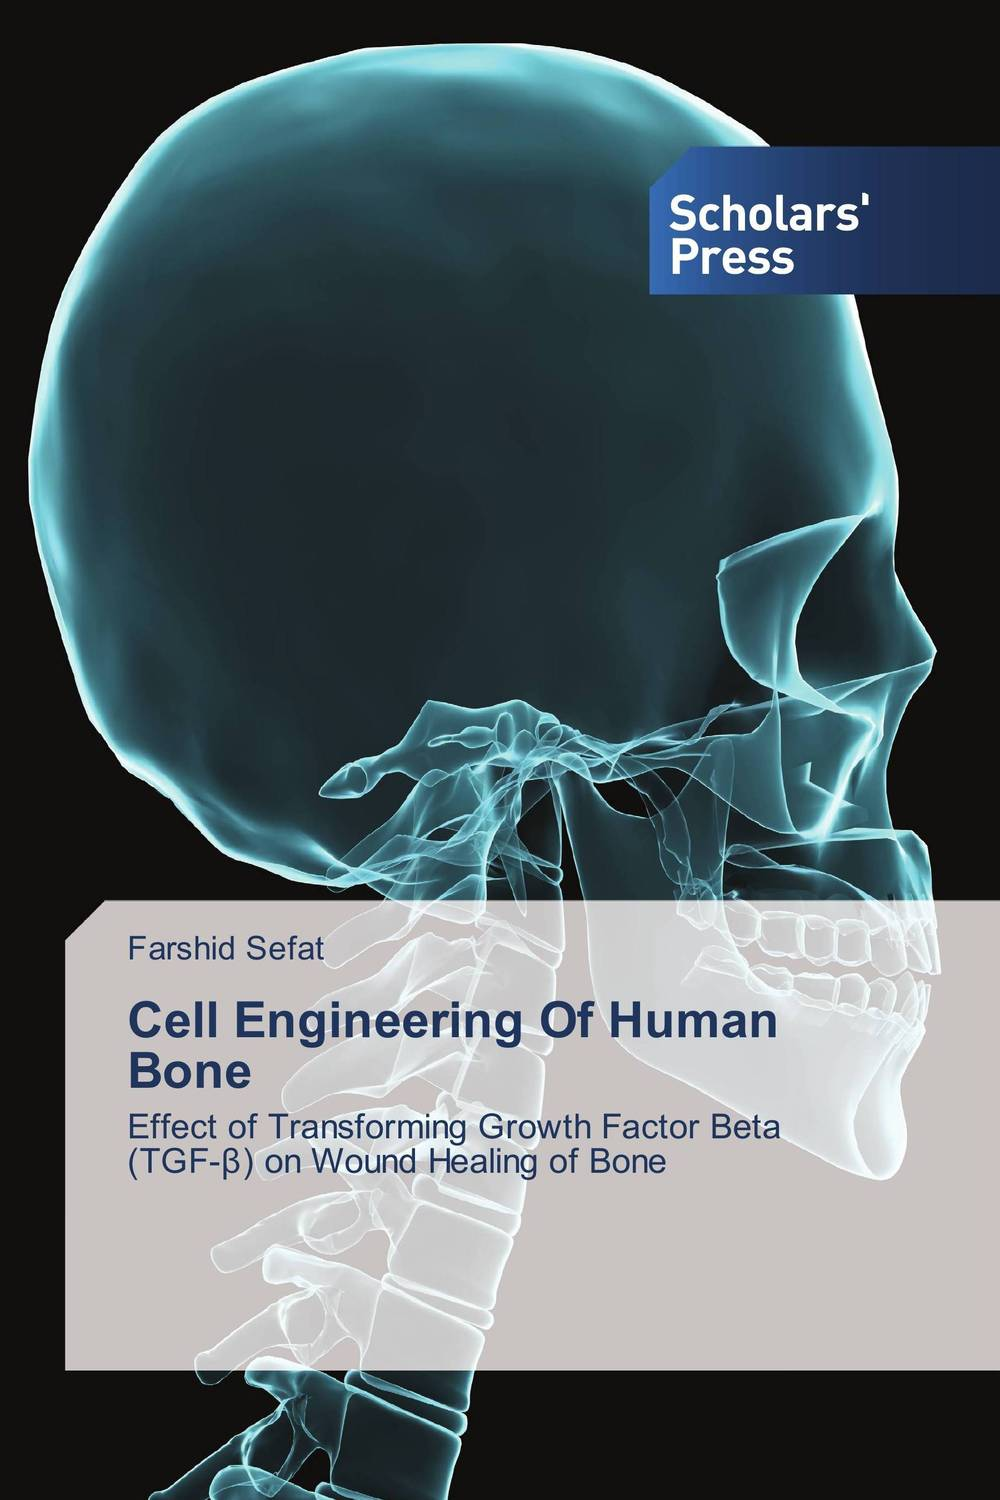 Cell Engineering Of Human Bone viruses cell transformation and cancer 5